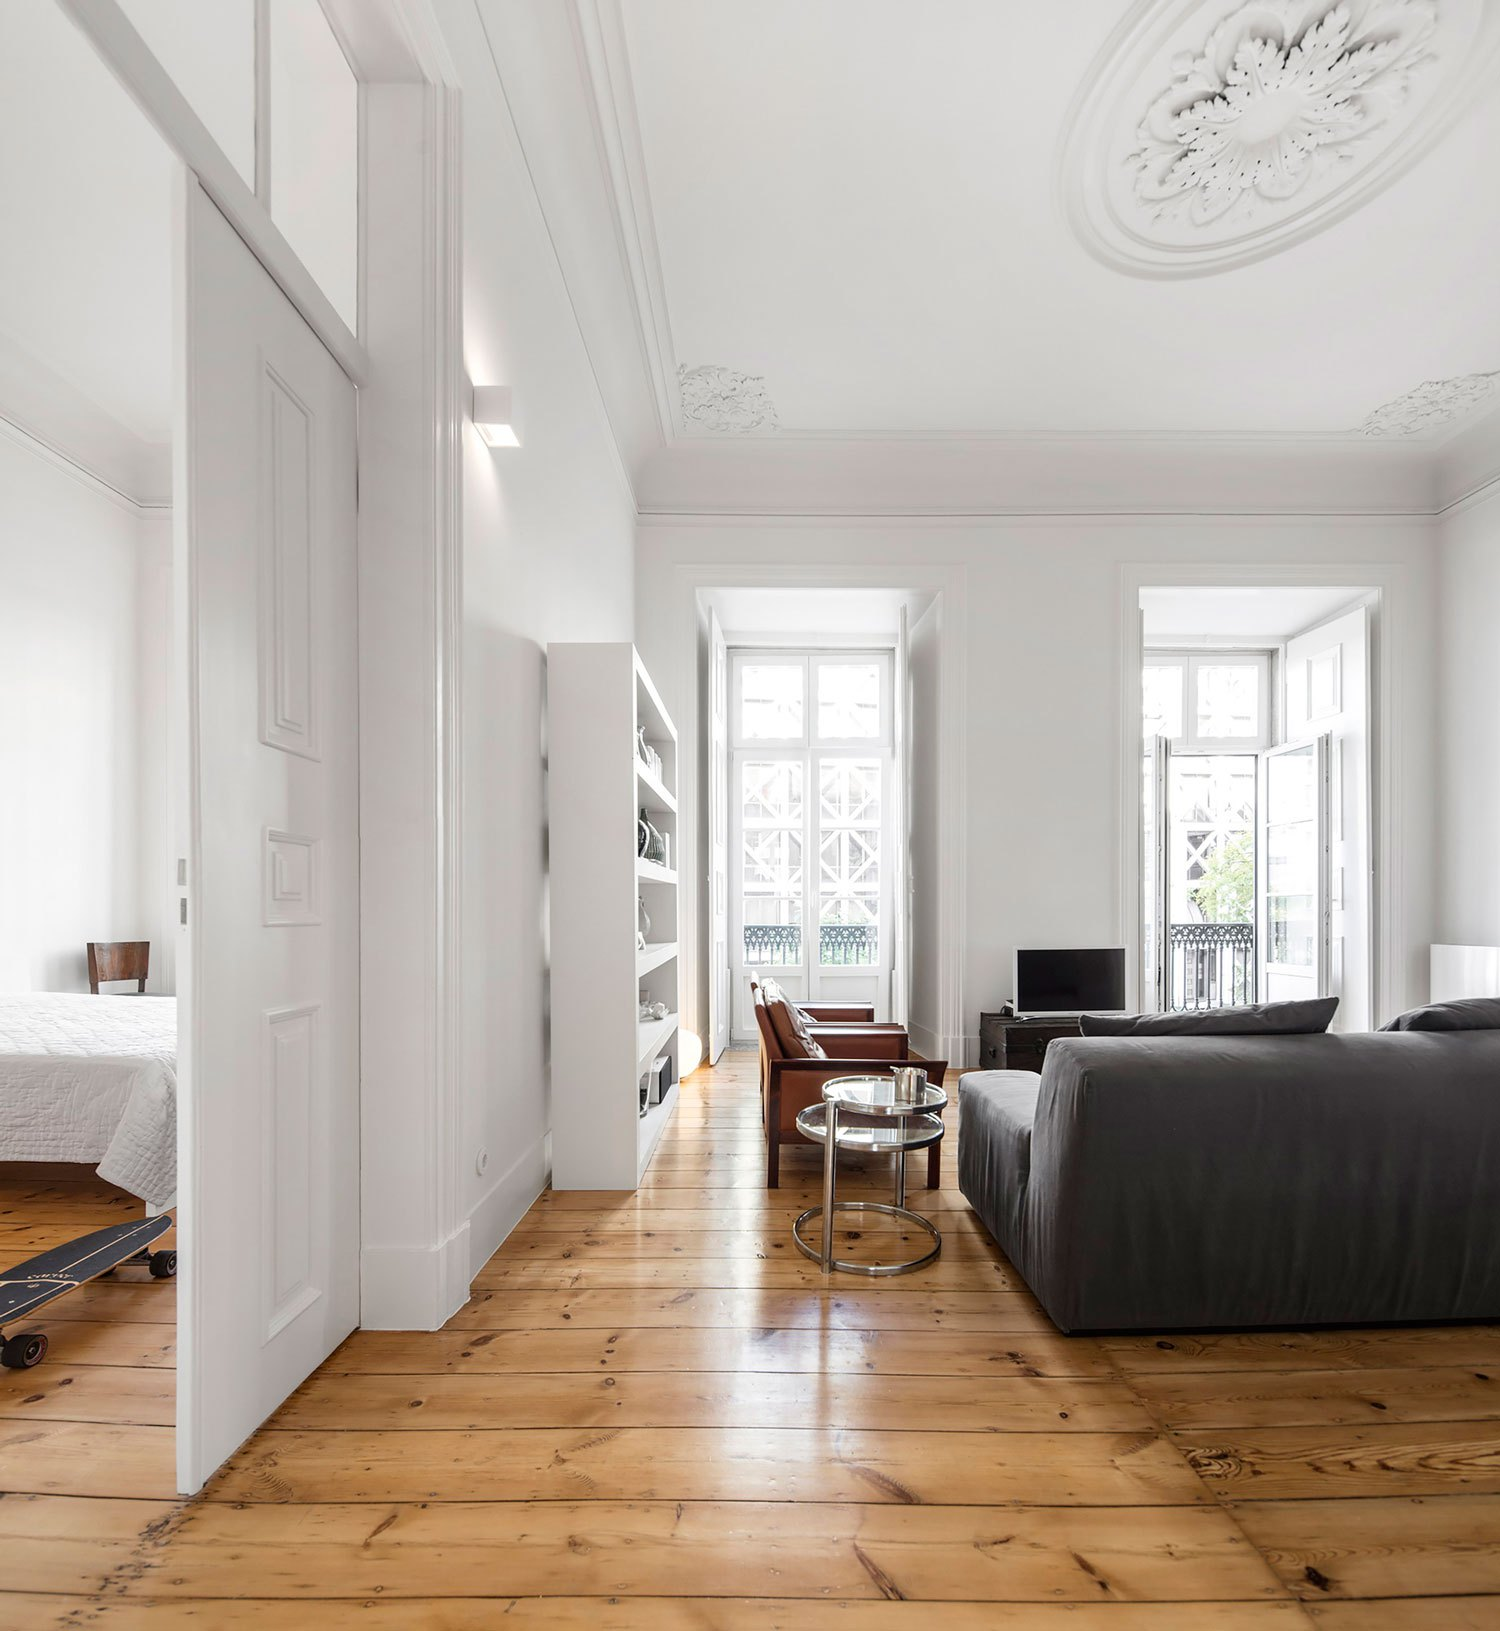 NANA-Apartment-in-Lisbon-by-rar-studio-Yellowtrace-19